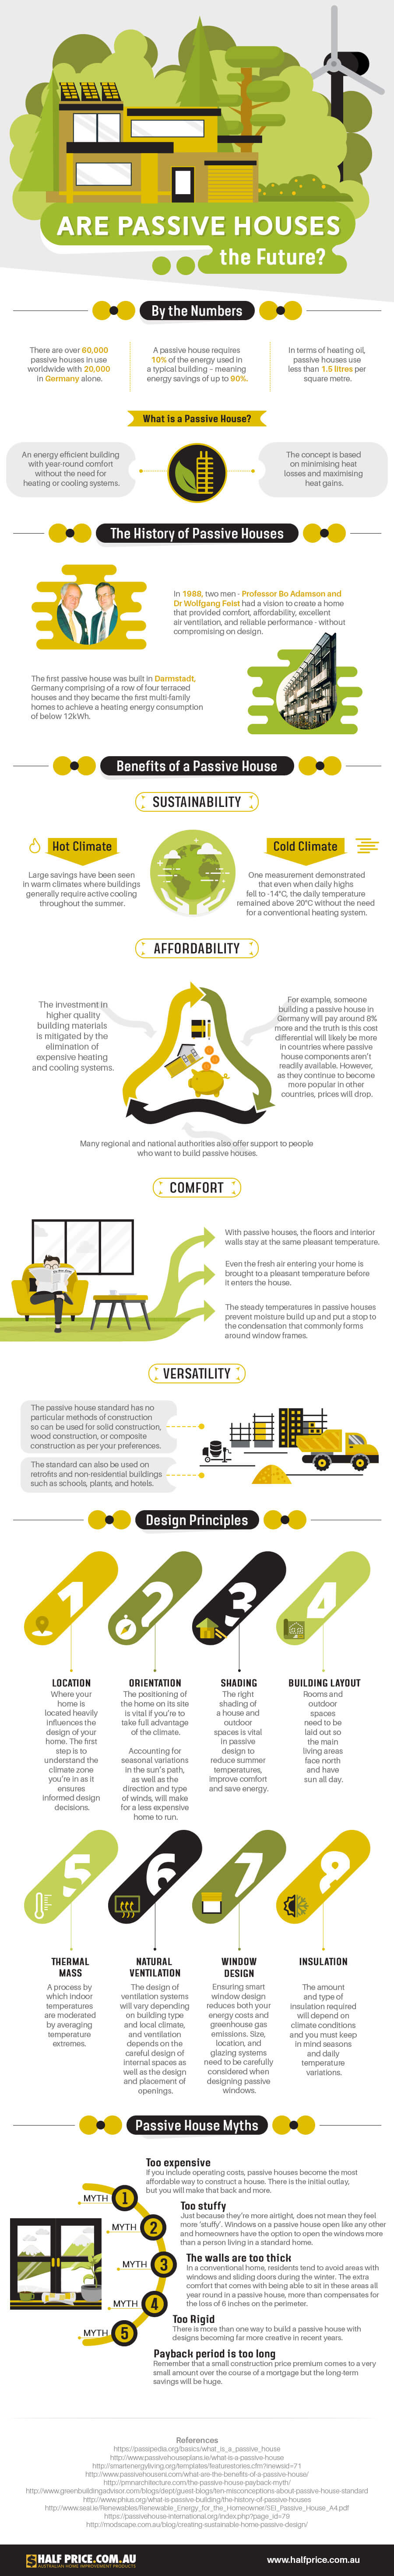 How-Passive-Houses-Can-Help-the-Environment-infographic-plaza